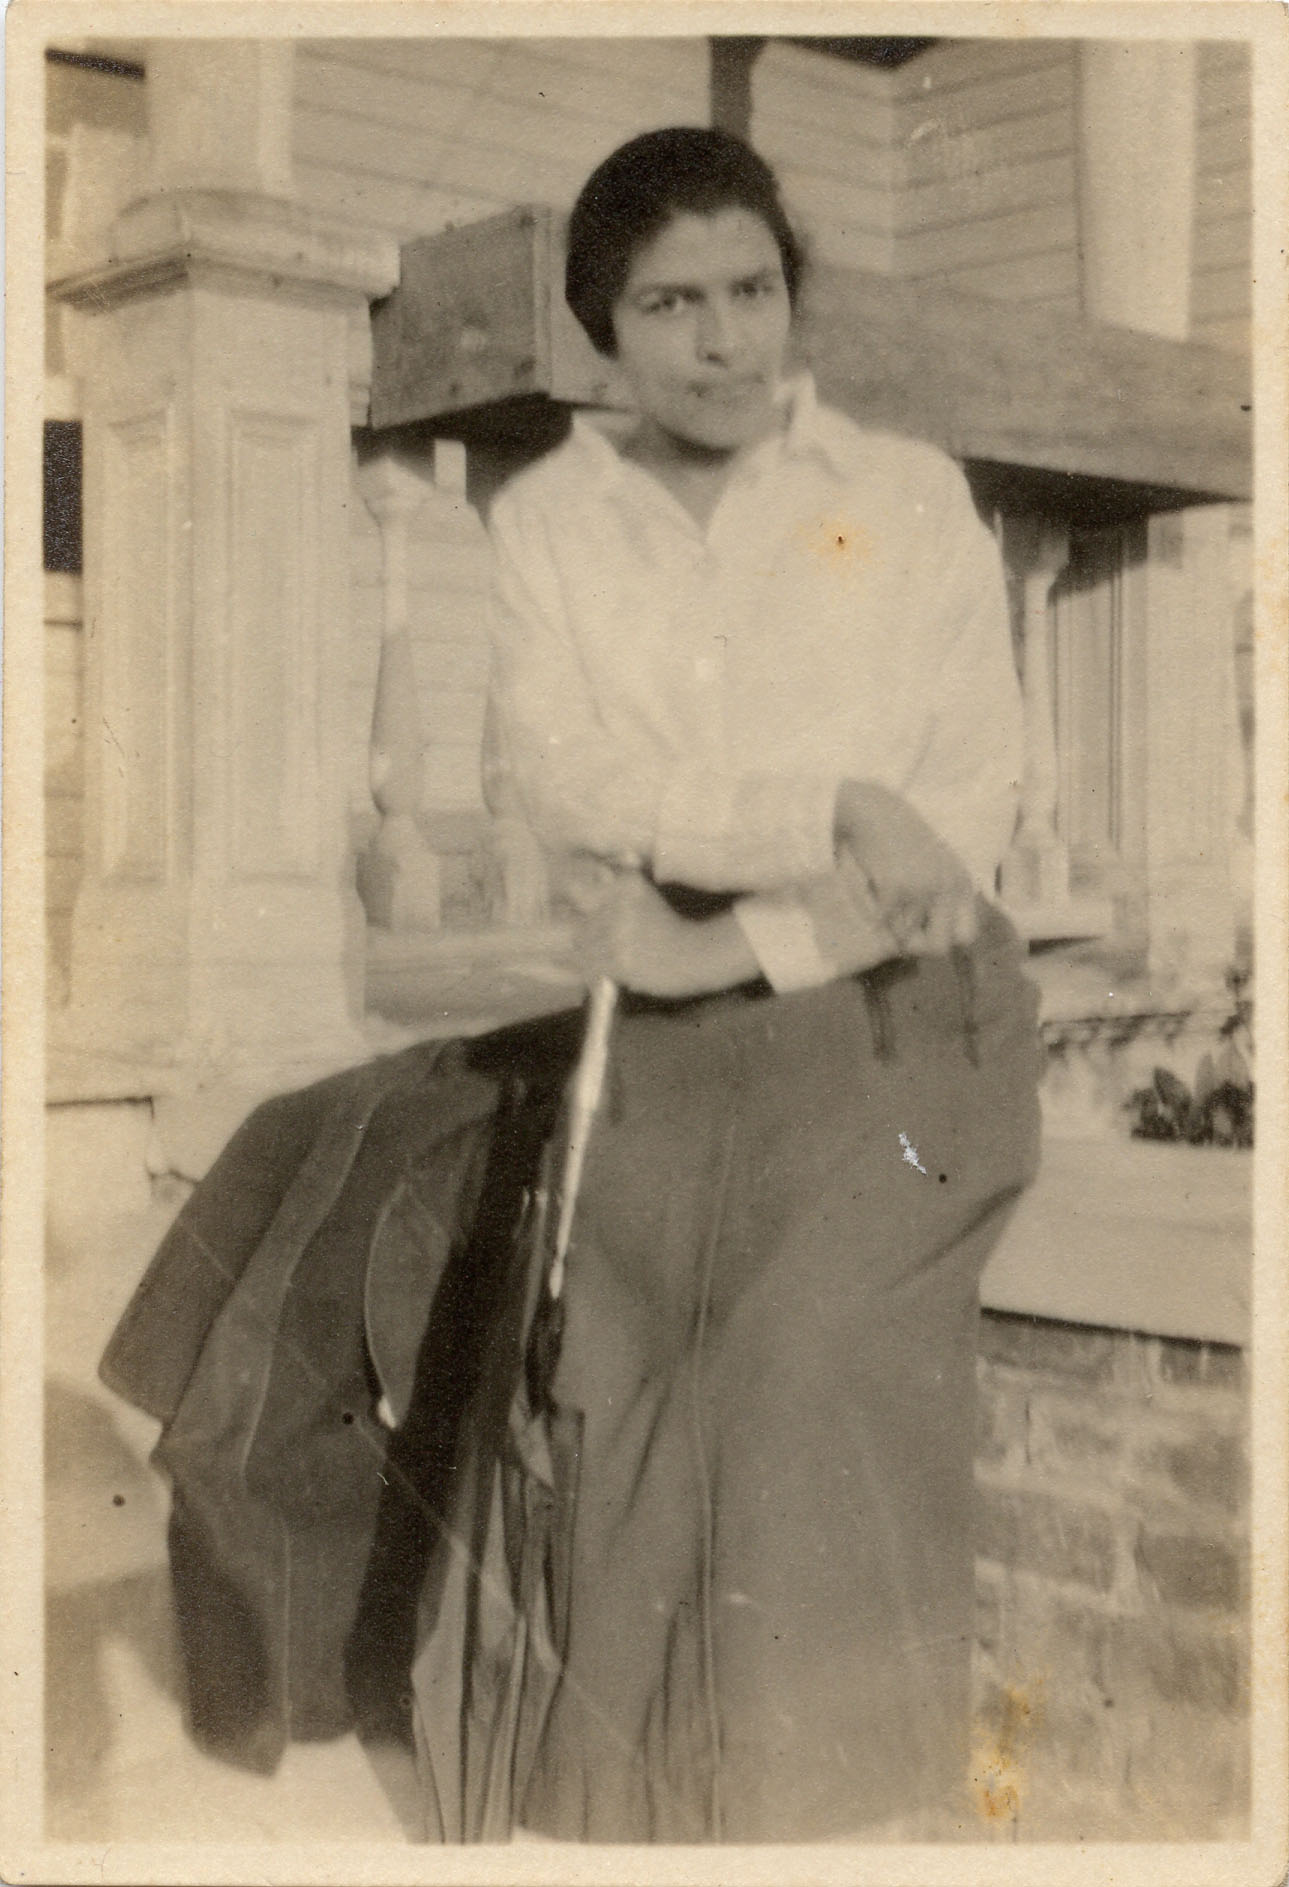 Miriam DeCosta Seabrook seated on porch